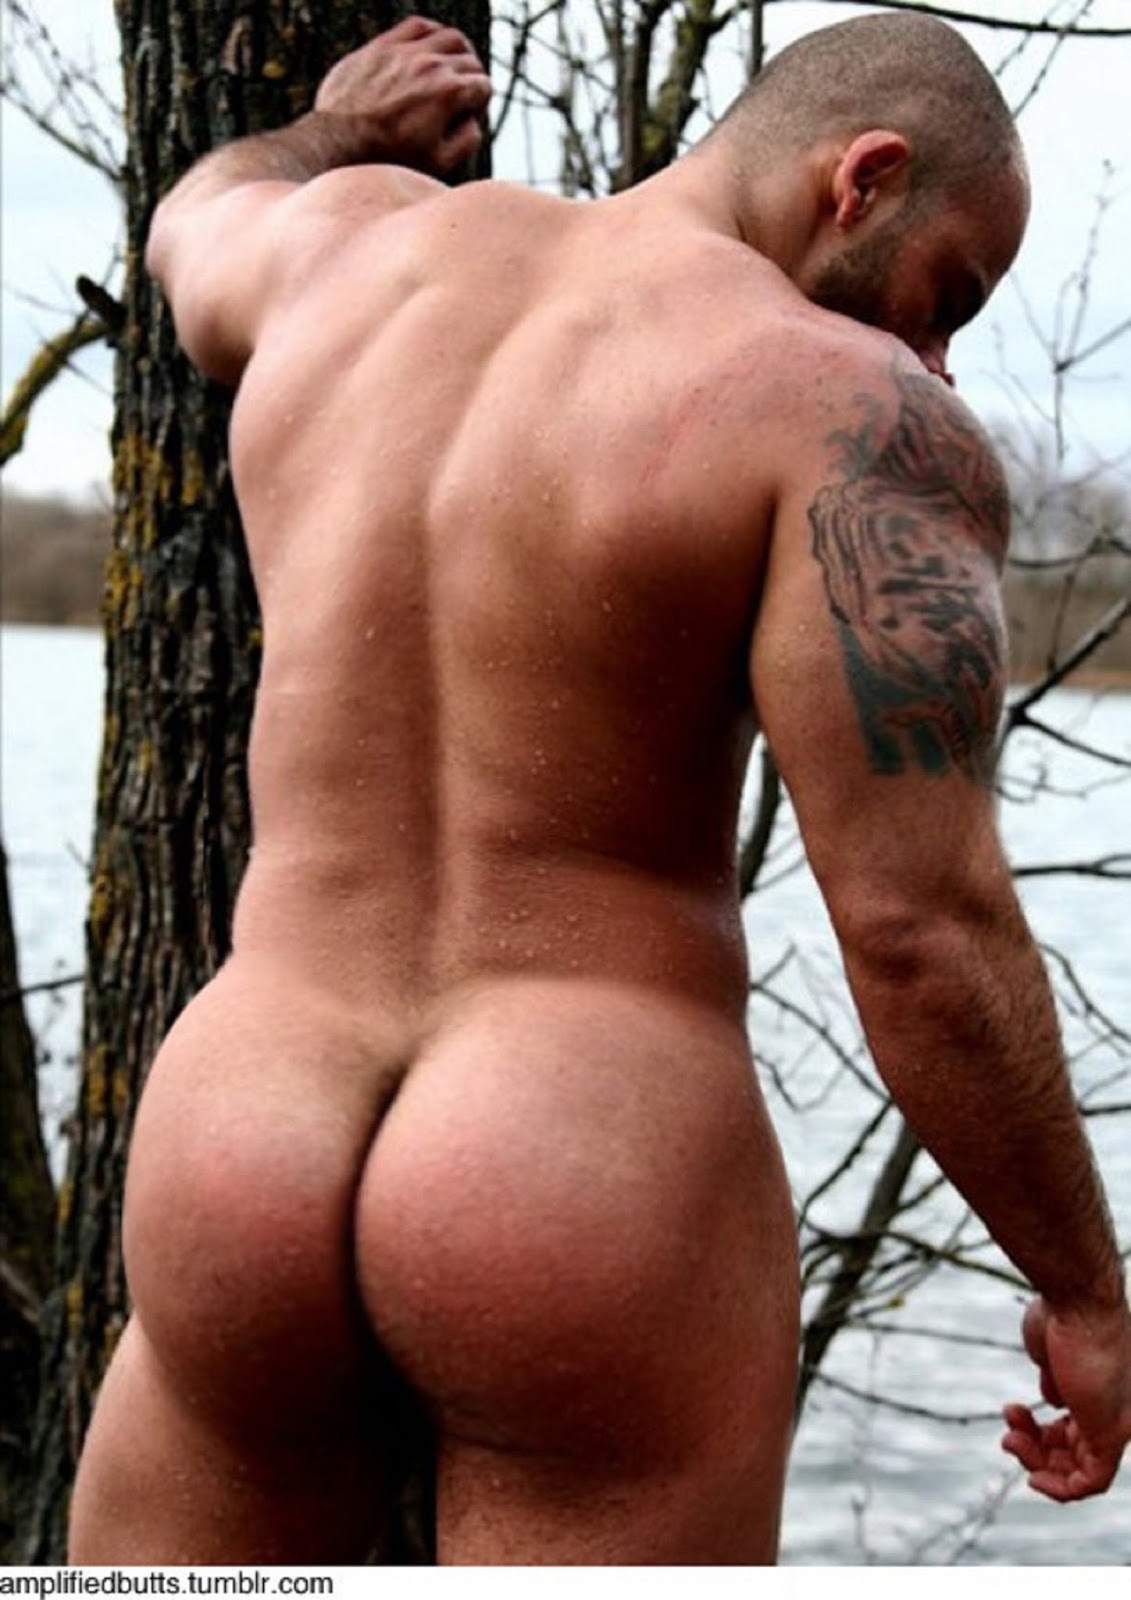 Muscle Men Nude Tumblr